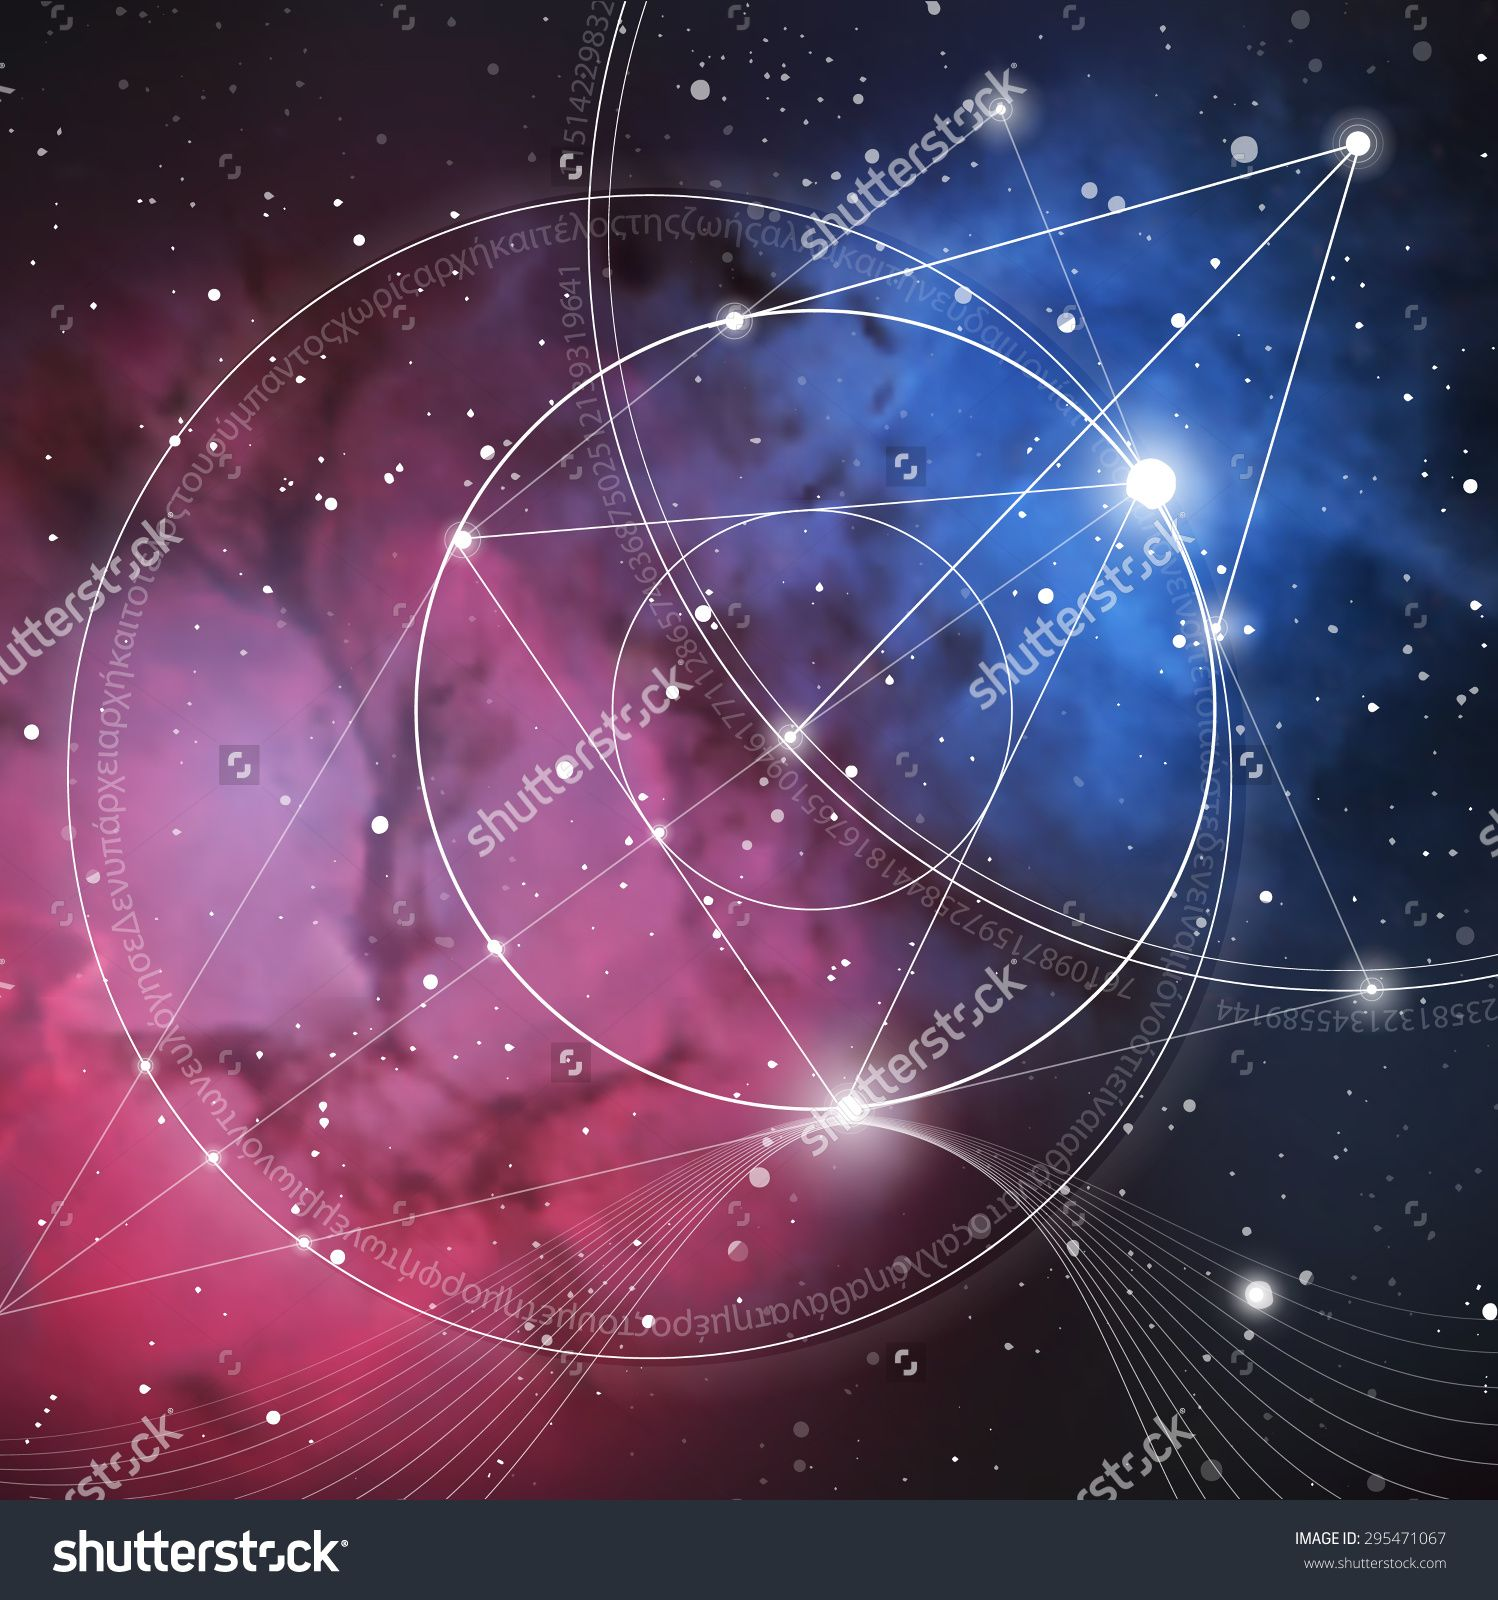 Mathematical symbols and digits in space the formula of nature mathematical symbols and digits in space the formula of nature biocorpaavc Gallery